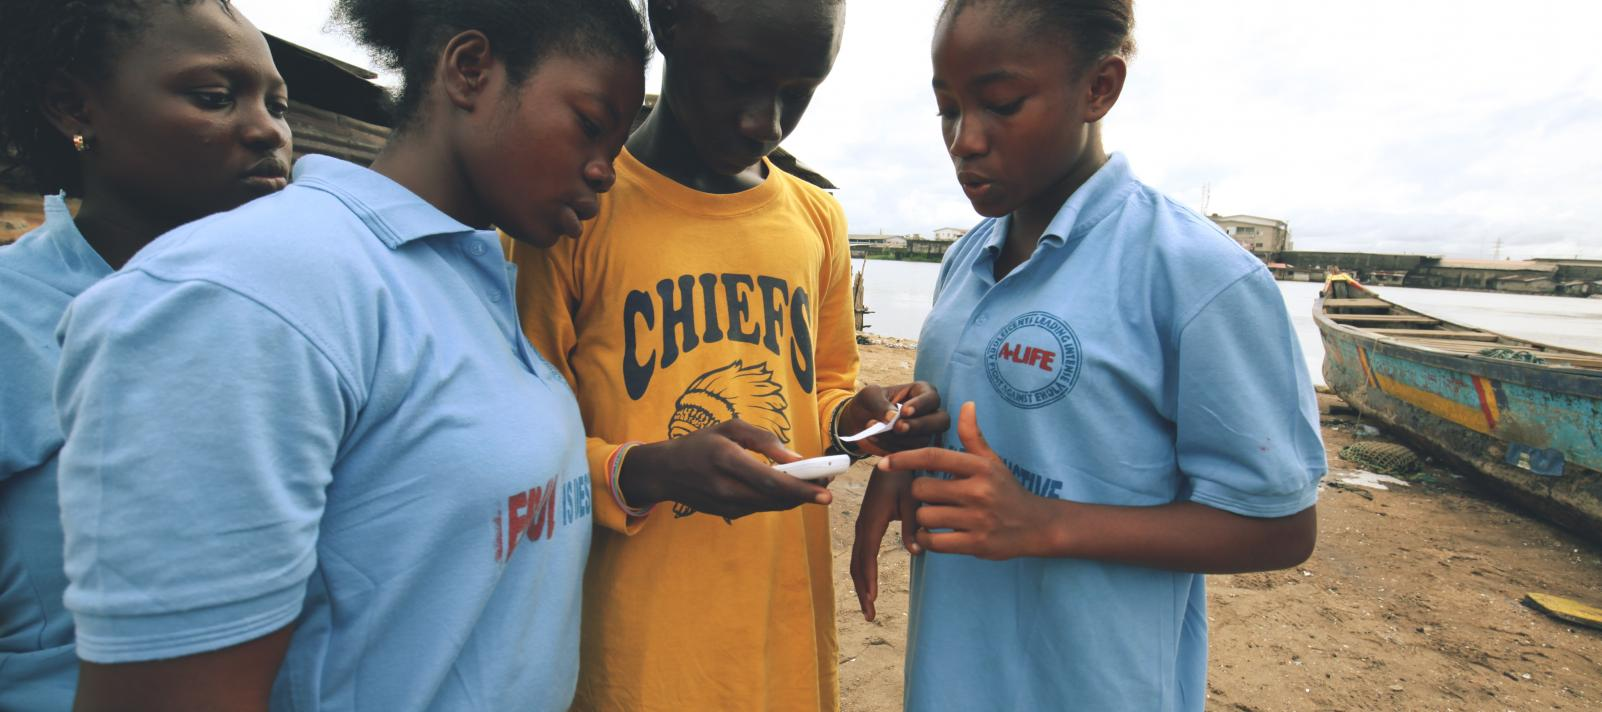 Young people reporting through their mobile phones during the ebola crisis